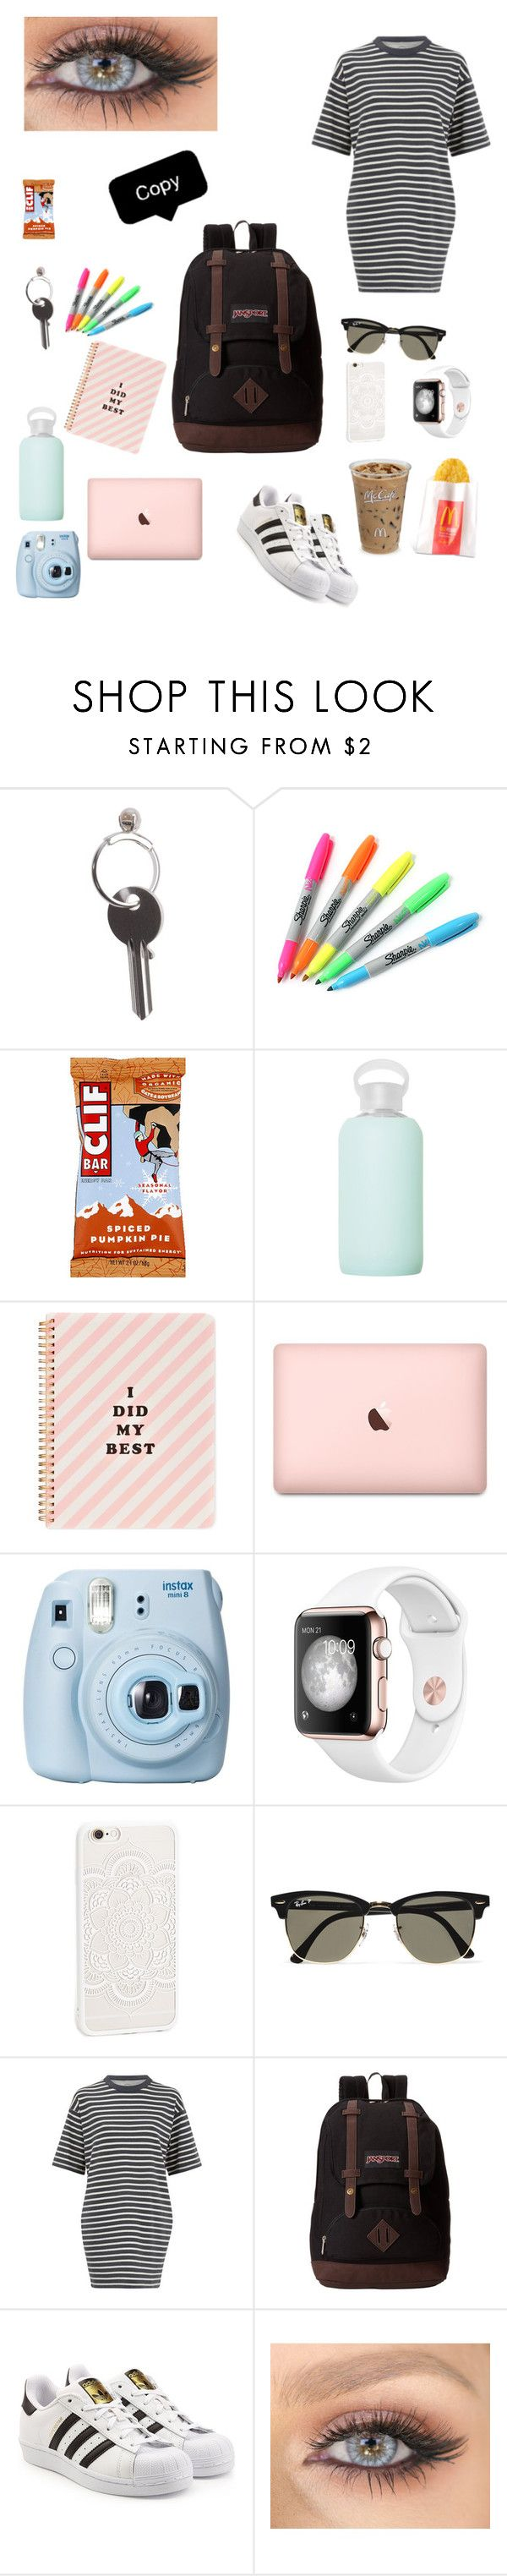 """""""You are running so late➡️"""" by kylieirwin11 ❤ liked on Polyvore featuring Maison Margiela, Sharpie, bkr, ban.do, Fujifilm, JFR, Ray-Ban, Wood Wood, JanSport and adidas Originals"""